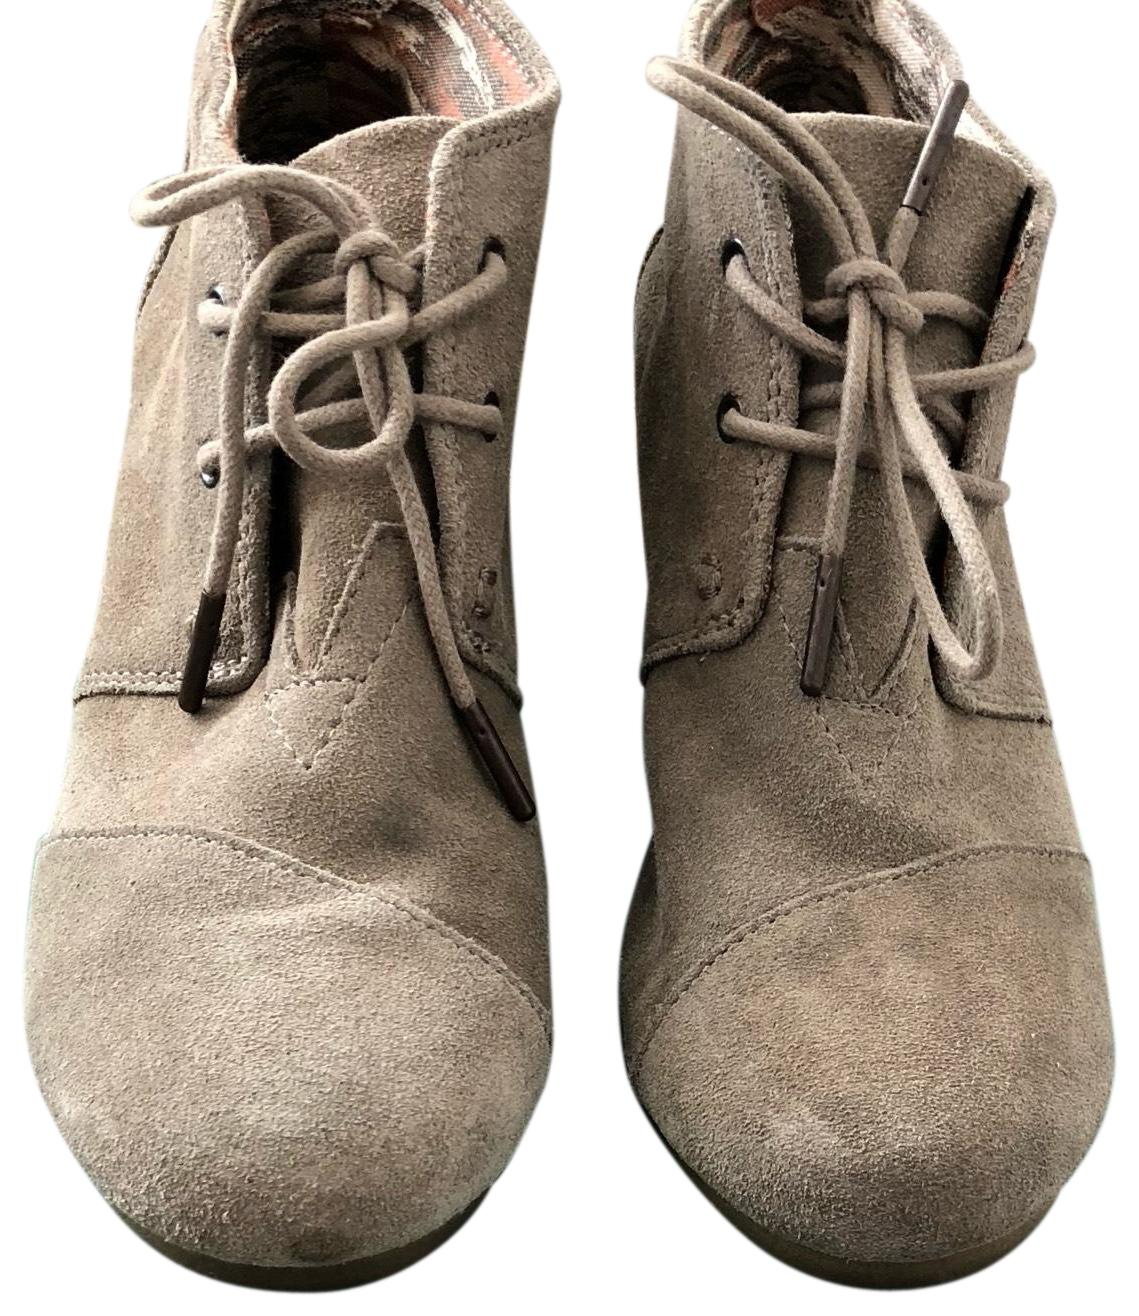 Taupe Wedge Boots/Booties Size US 7.5 Regular (M, B)